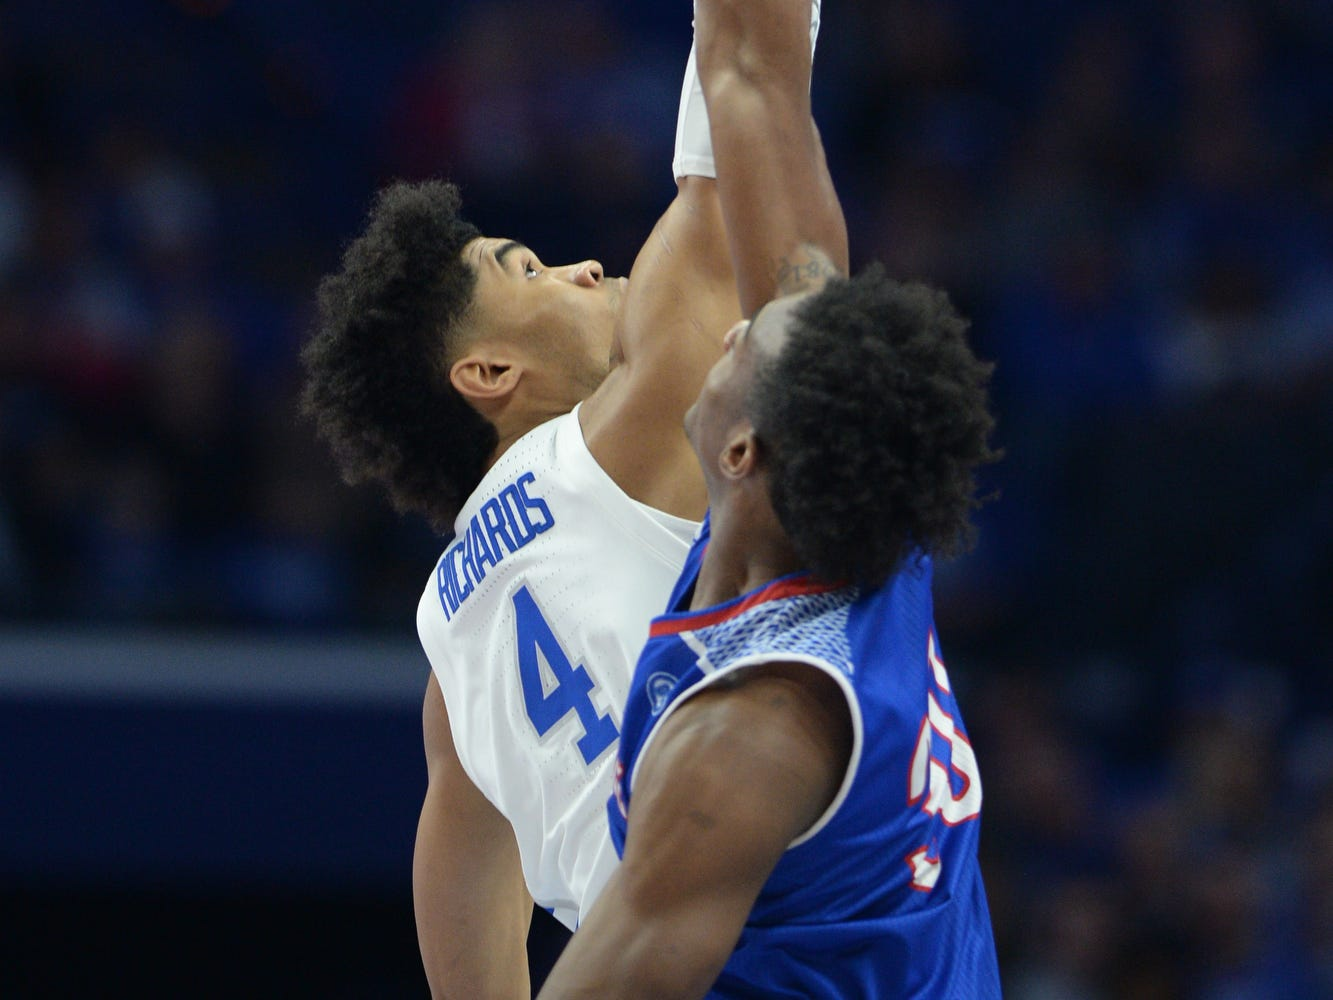 UK forward Nick Richards win the tip off to begin the University of Kentucky men's basketball game against Tennessee State at Rupp Arena in Lexington, Kentucky, on Friday, Nov. 23, 2018.